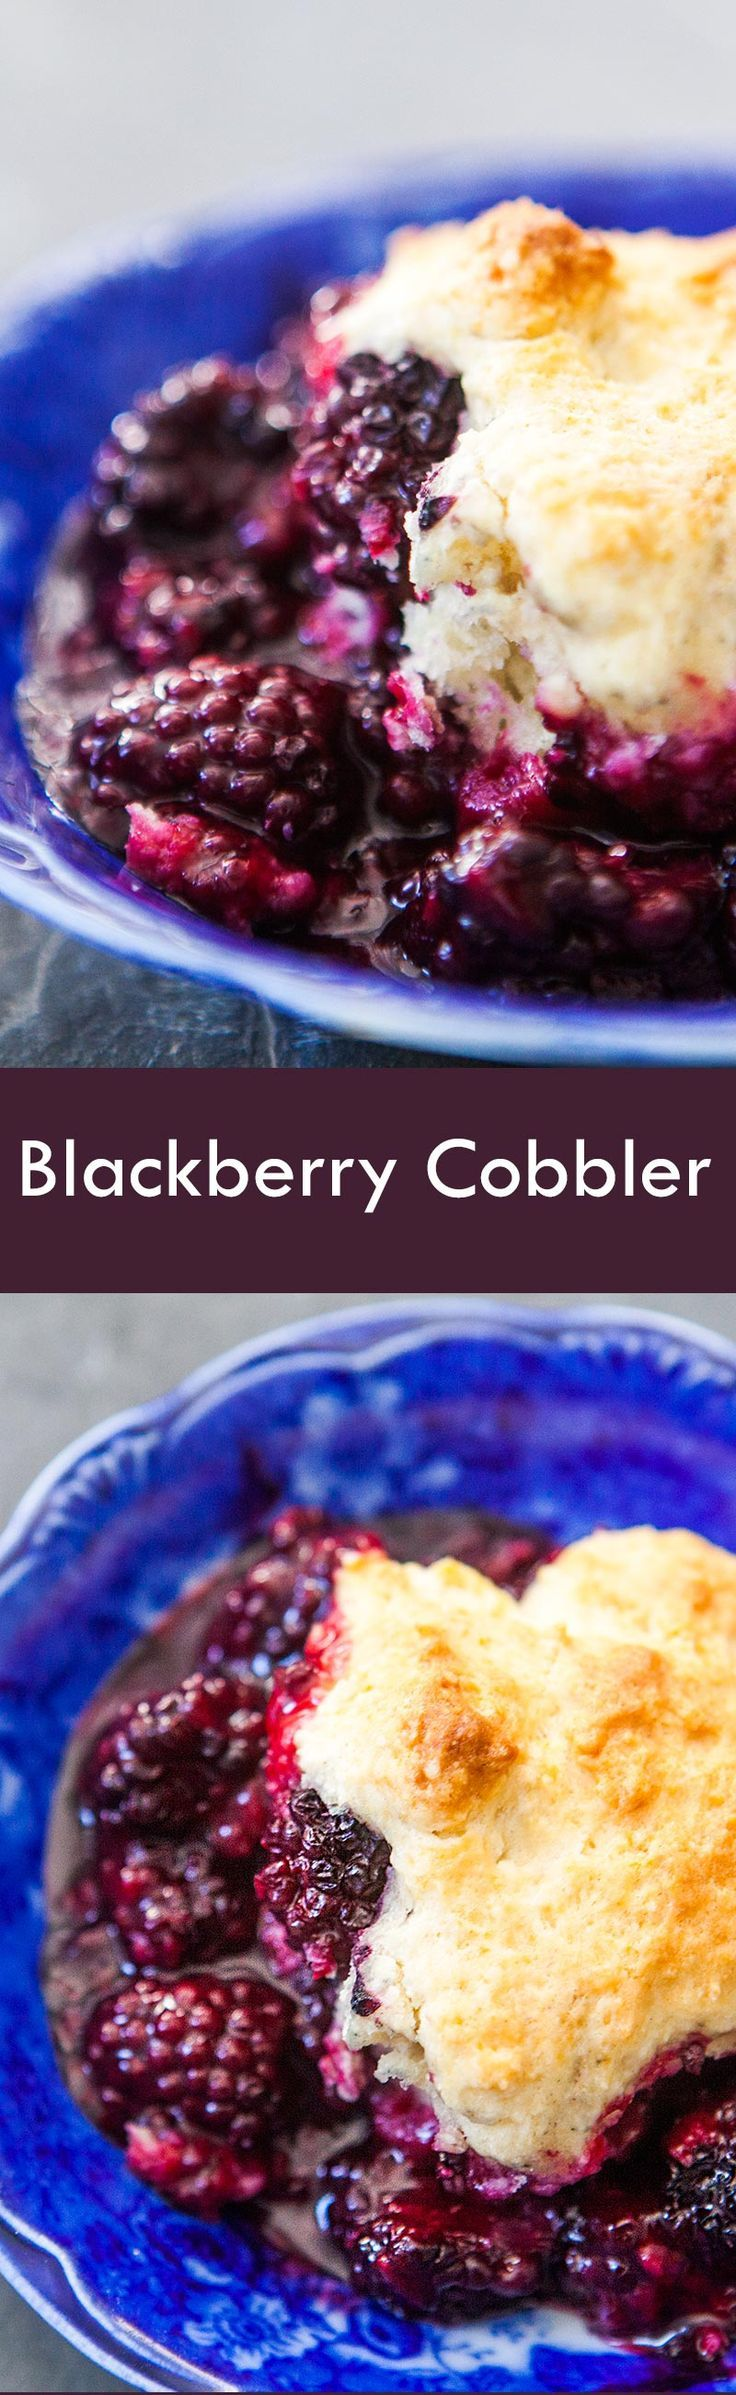 Blackberry cobbler! with fresh blackberries and topped with a homemade biscuity cobbler topping. Quick and easy dessert on SimplyRecipes.com